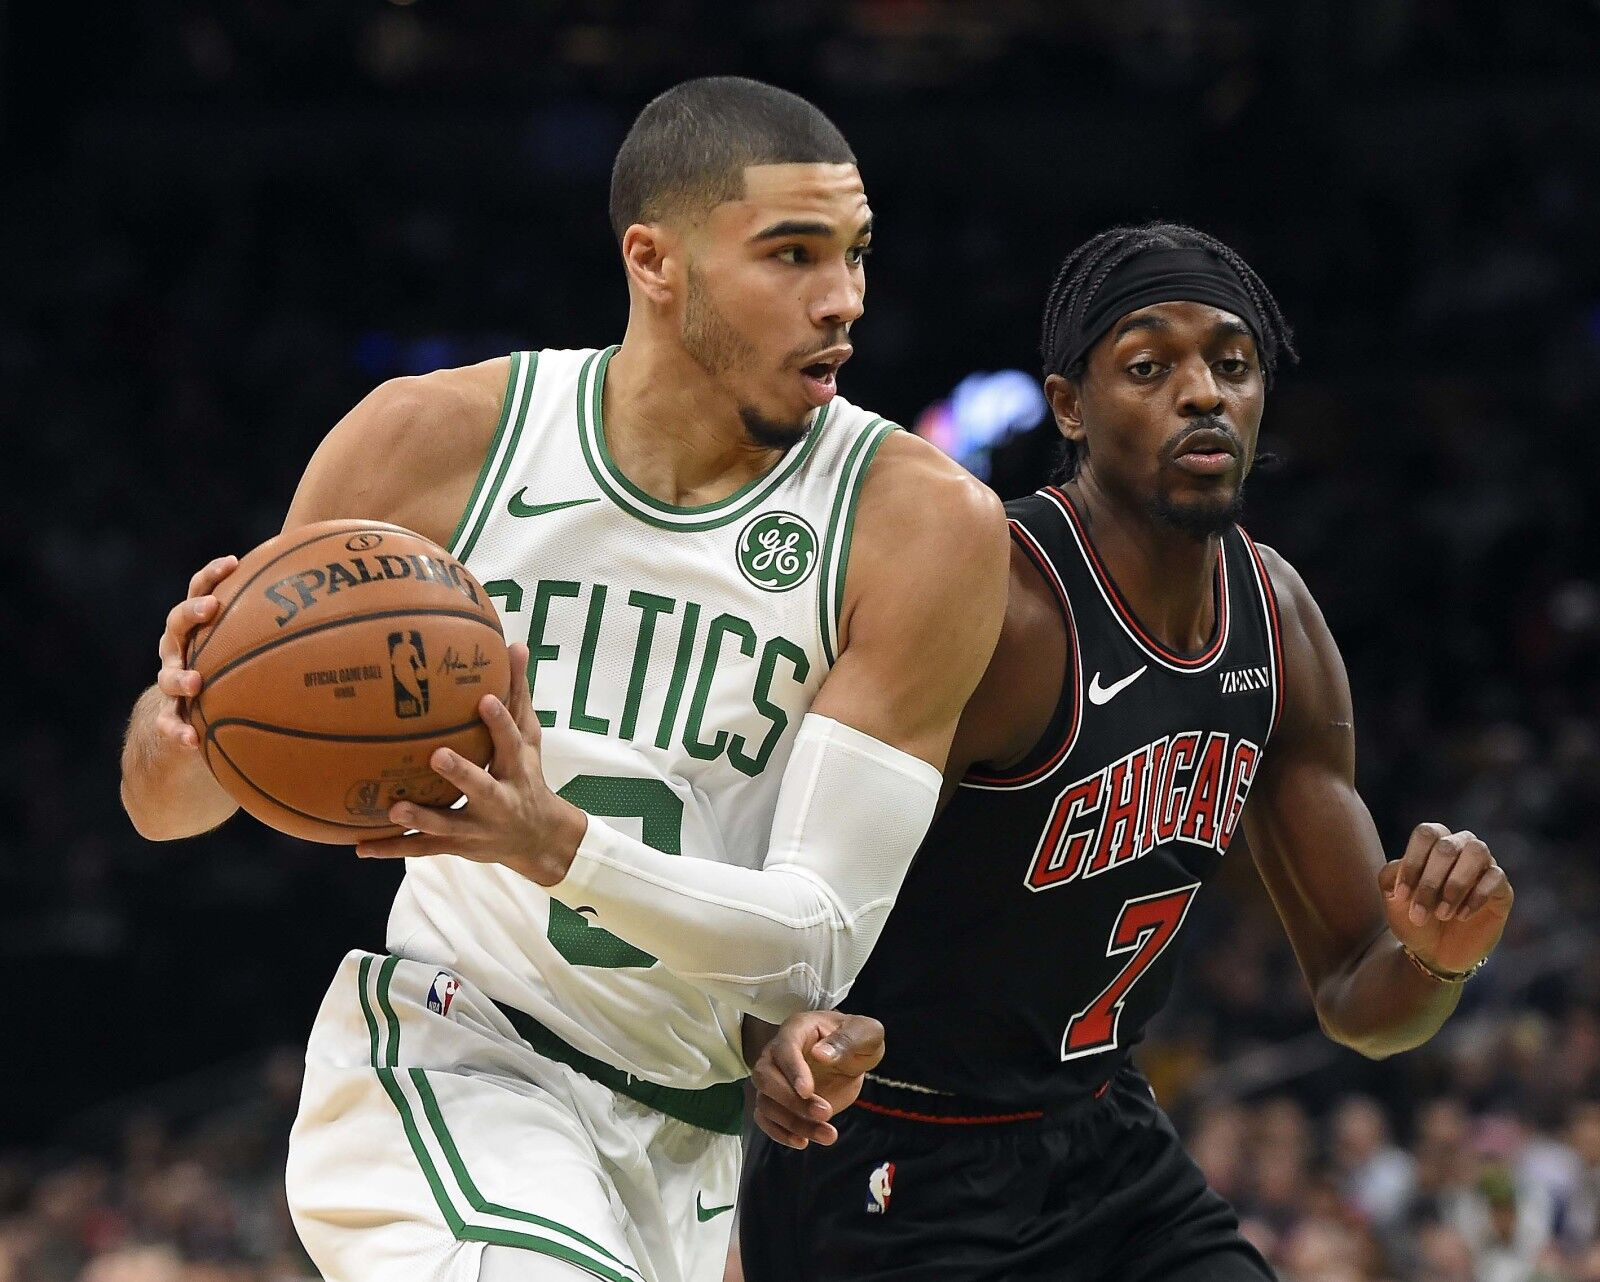 What to watch for when the Boston Celtics visit the Chicago Bulls